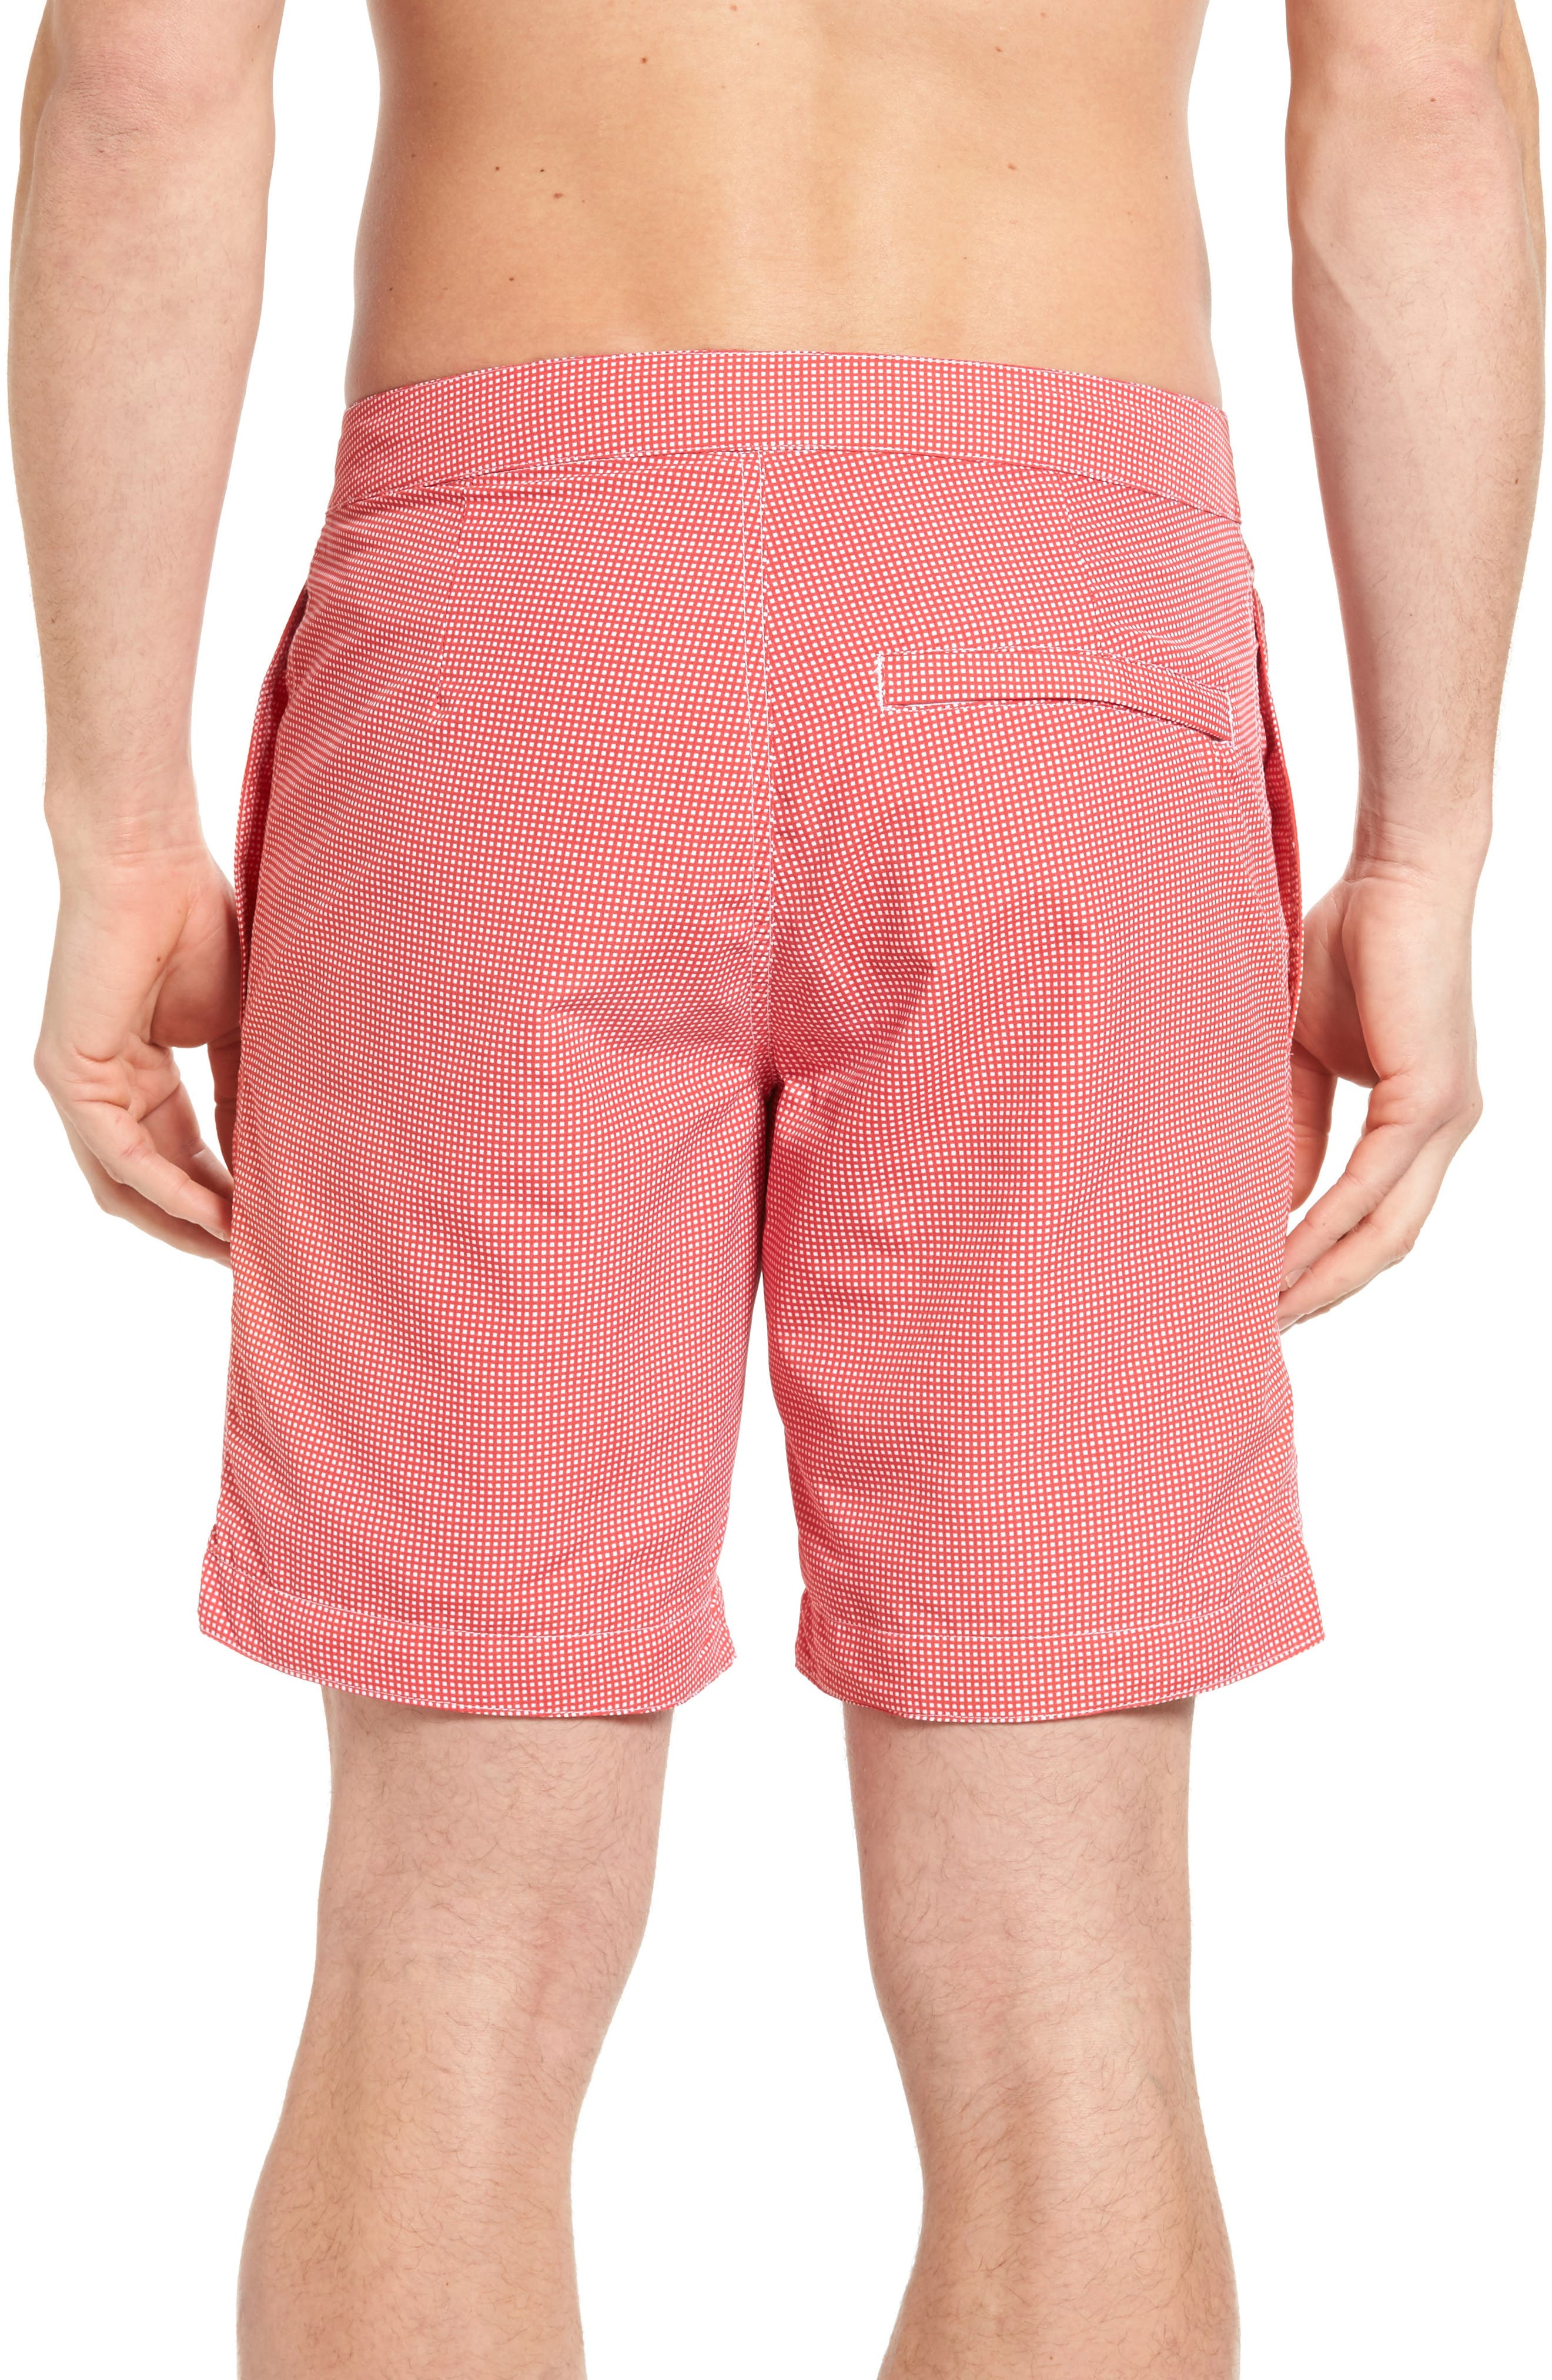 Aruba Microcheck Tailored Fit 8.5 Inch Swim Trunks,                             Alternate thumbnail 2, color,                             Coral